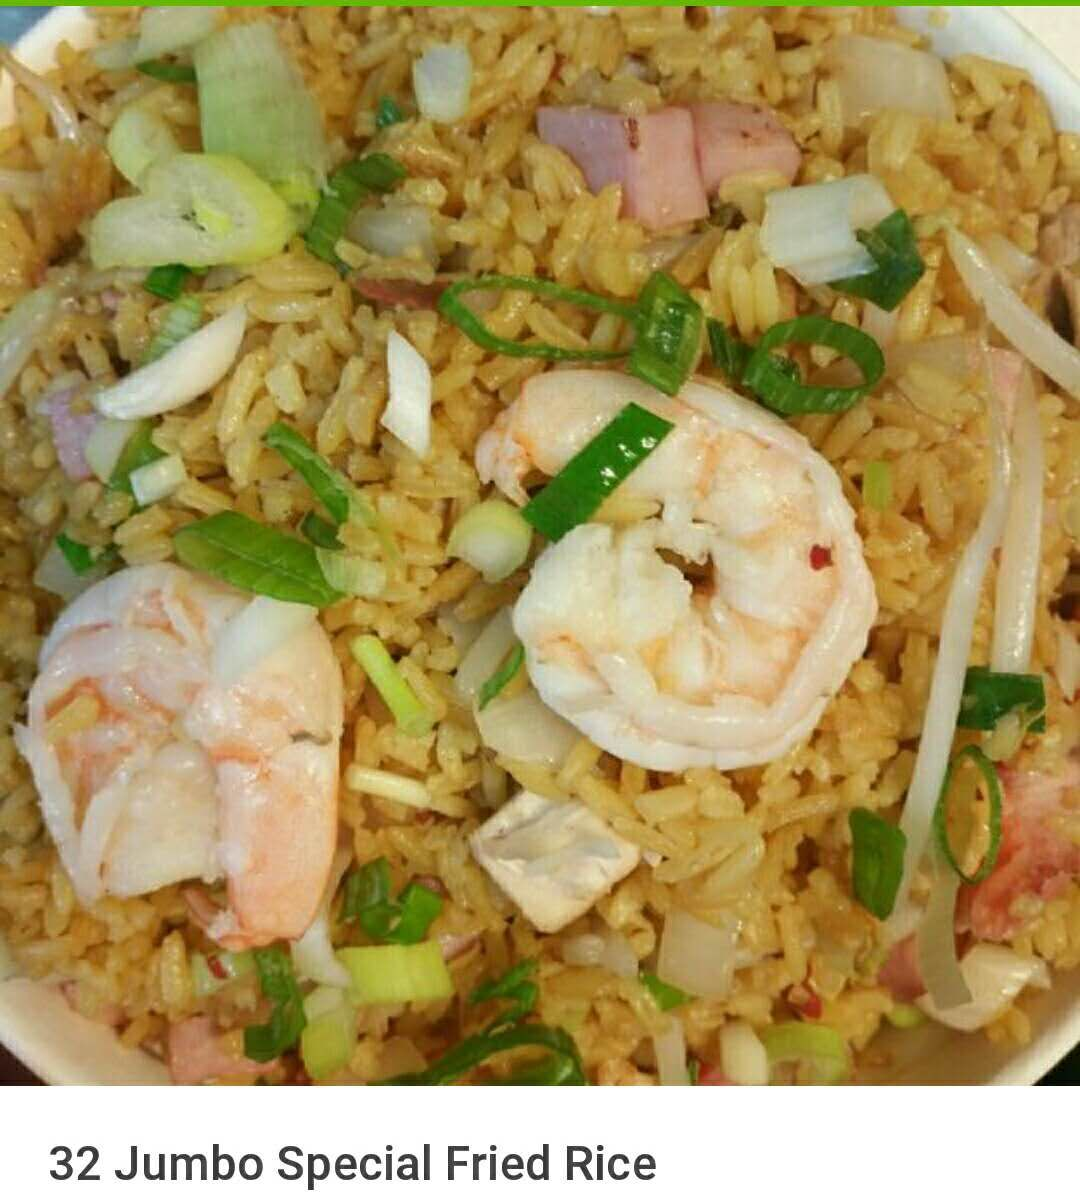 32. Jumbo Special Fried Rice Image